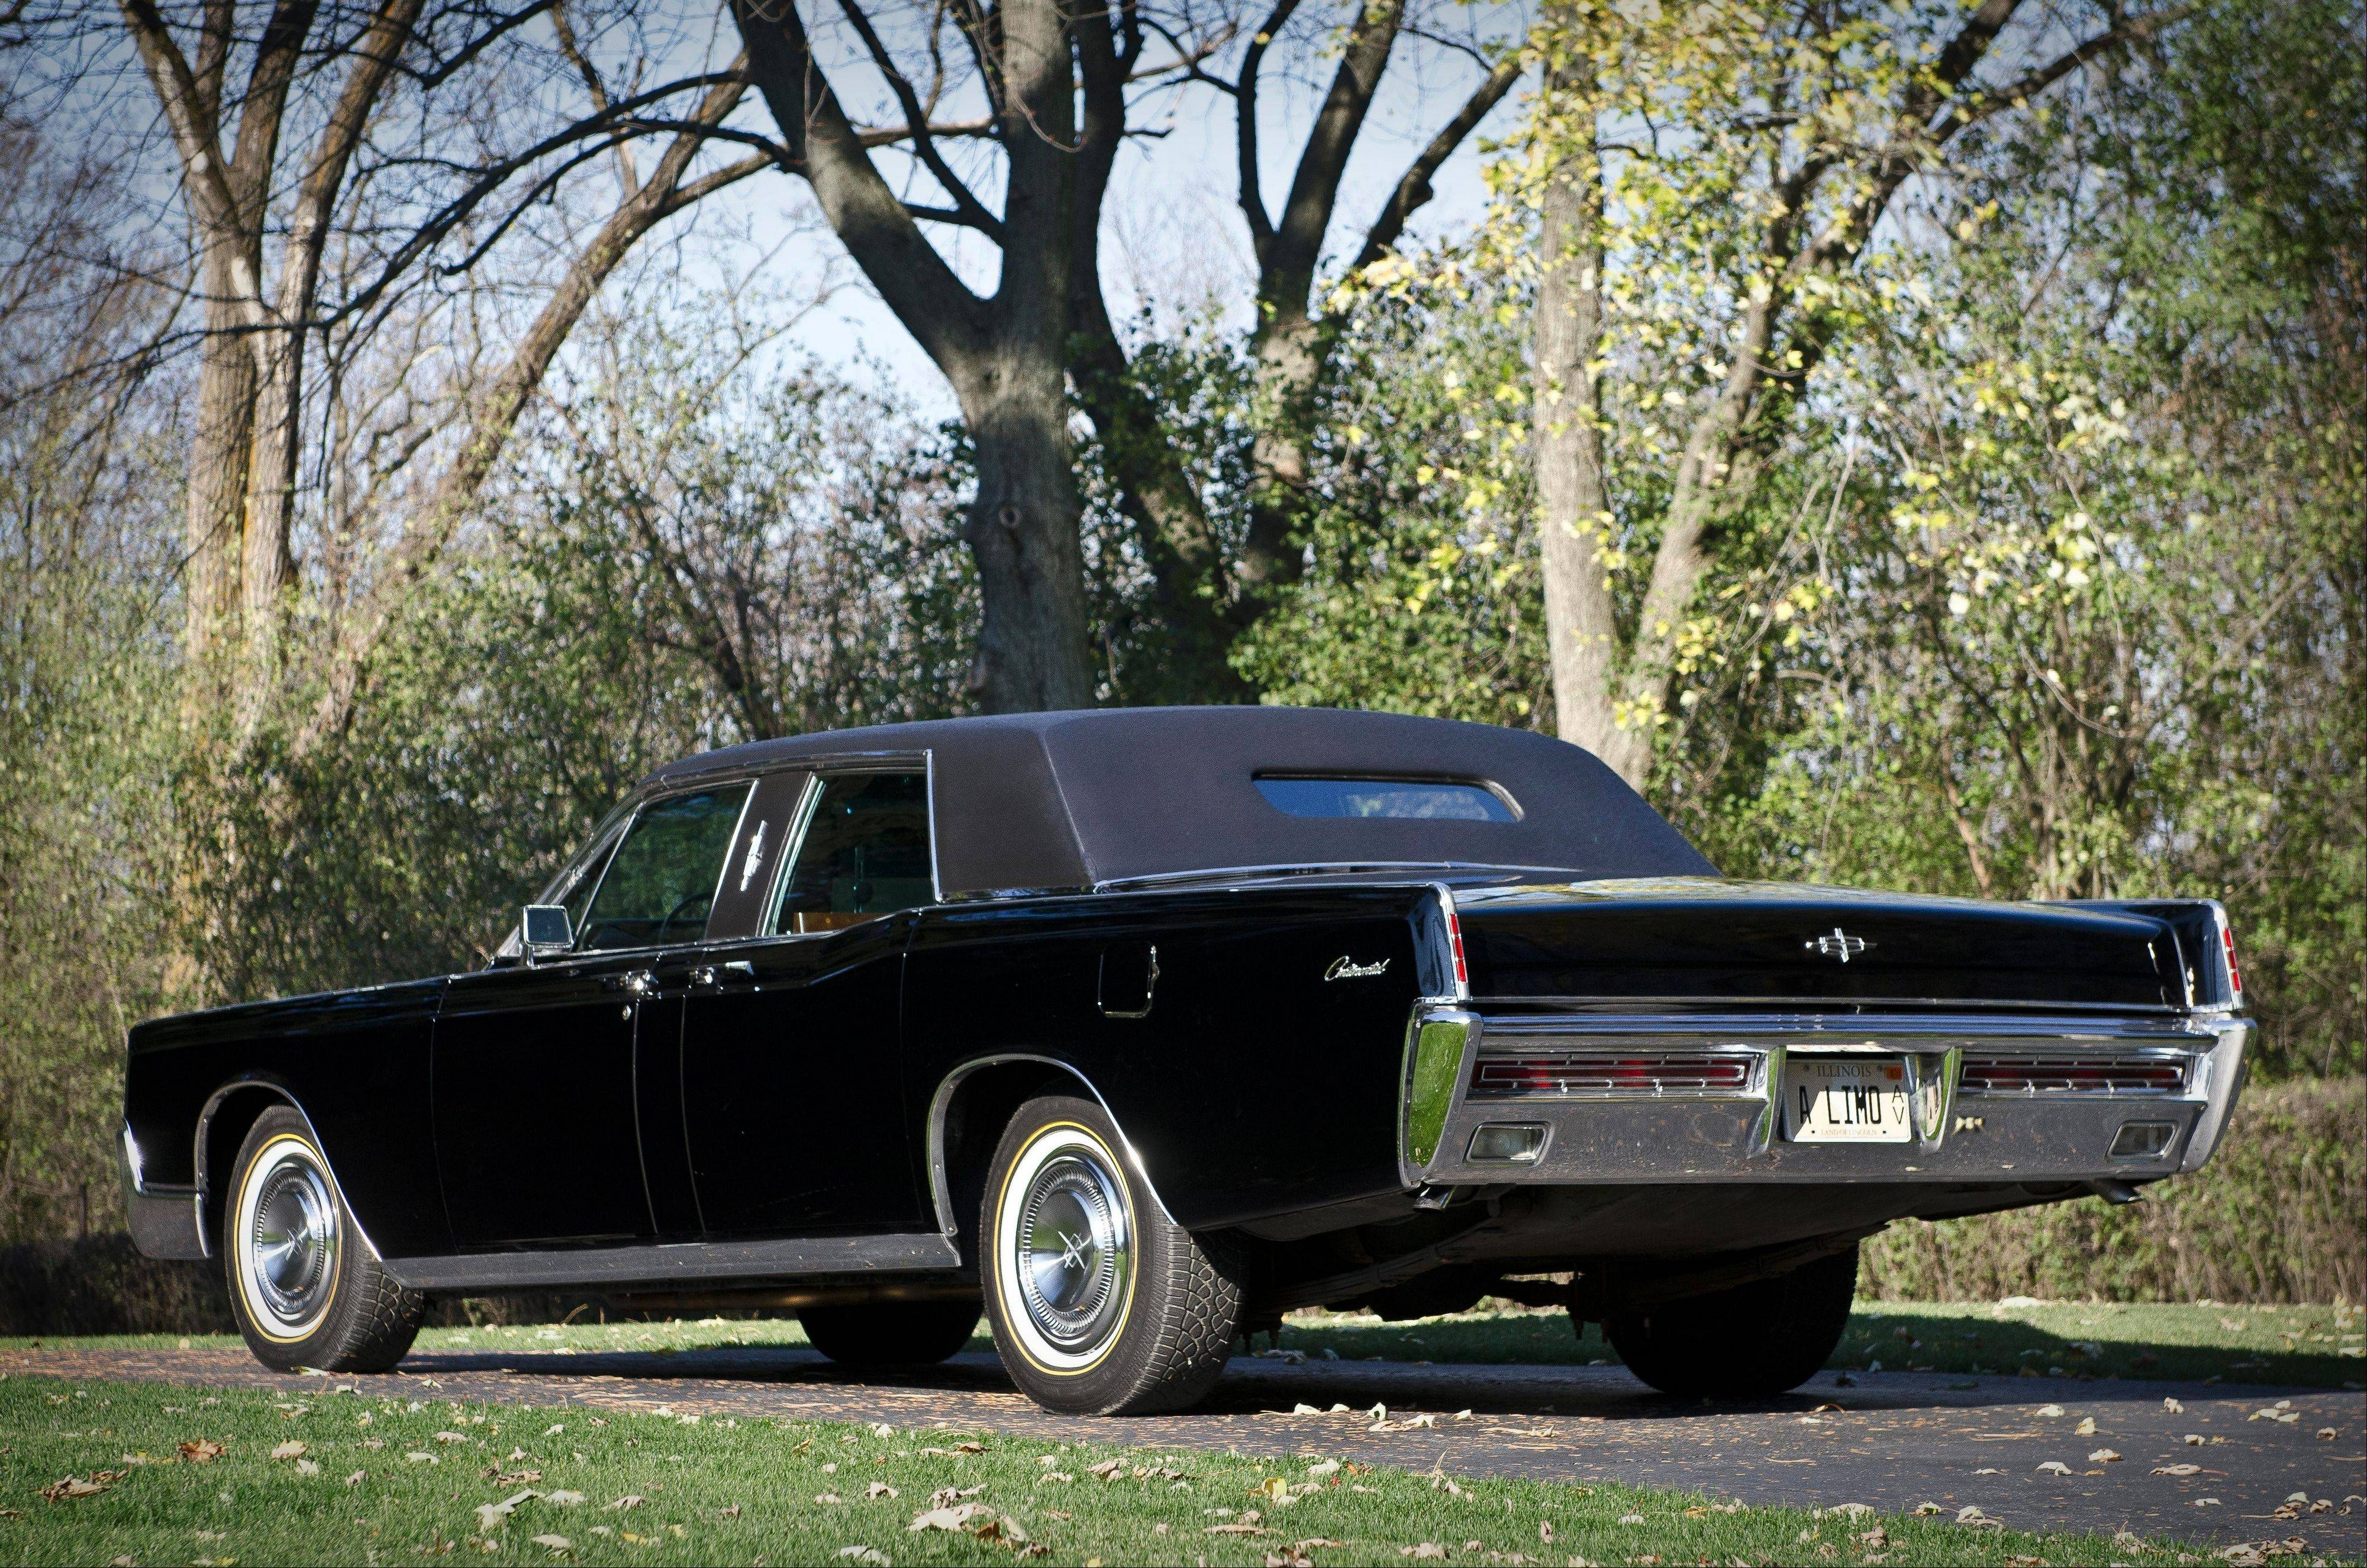 After Searle's ownership, the limousine went to an East Coast collector before more recently coming back to an Illinois enthusiast last year.